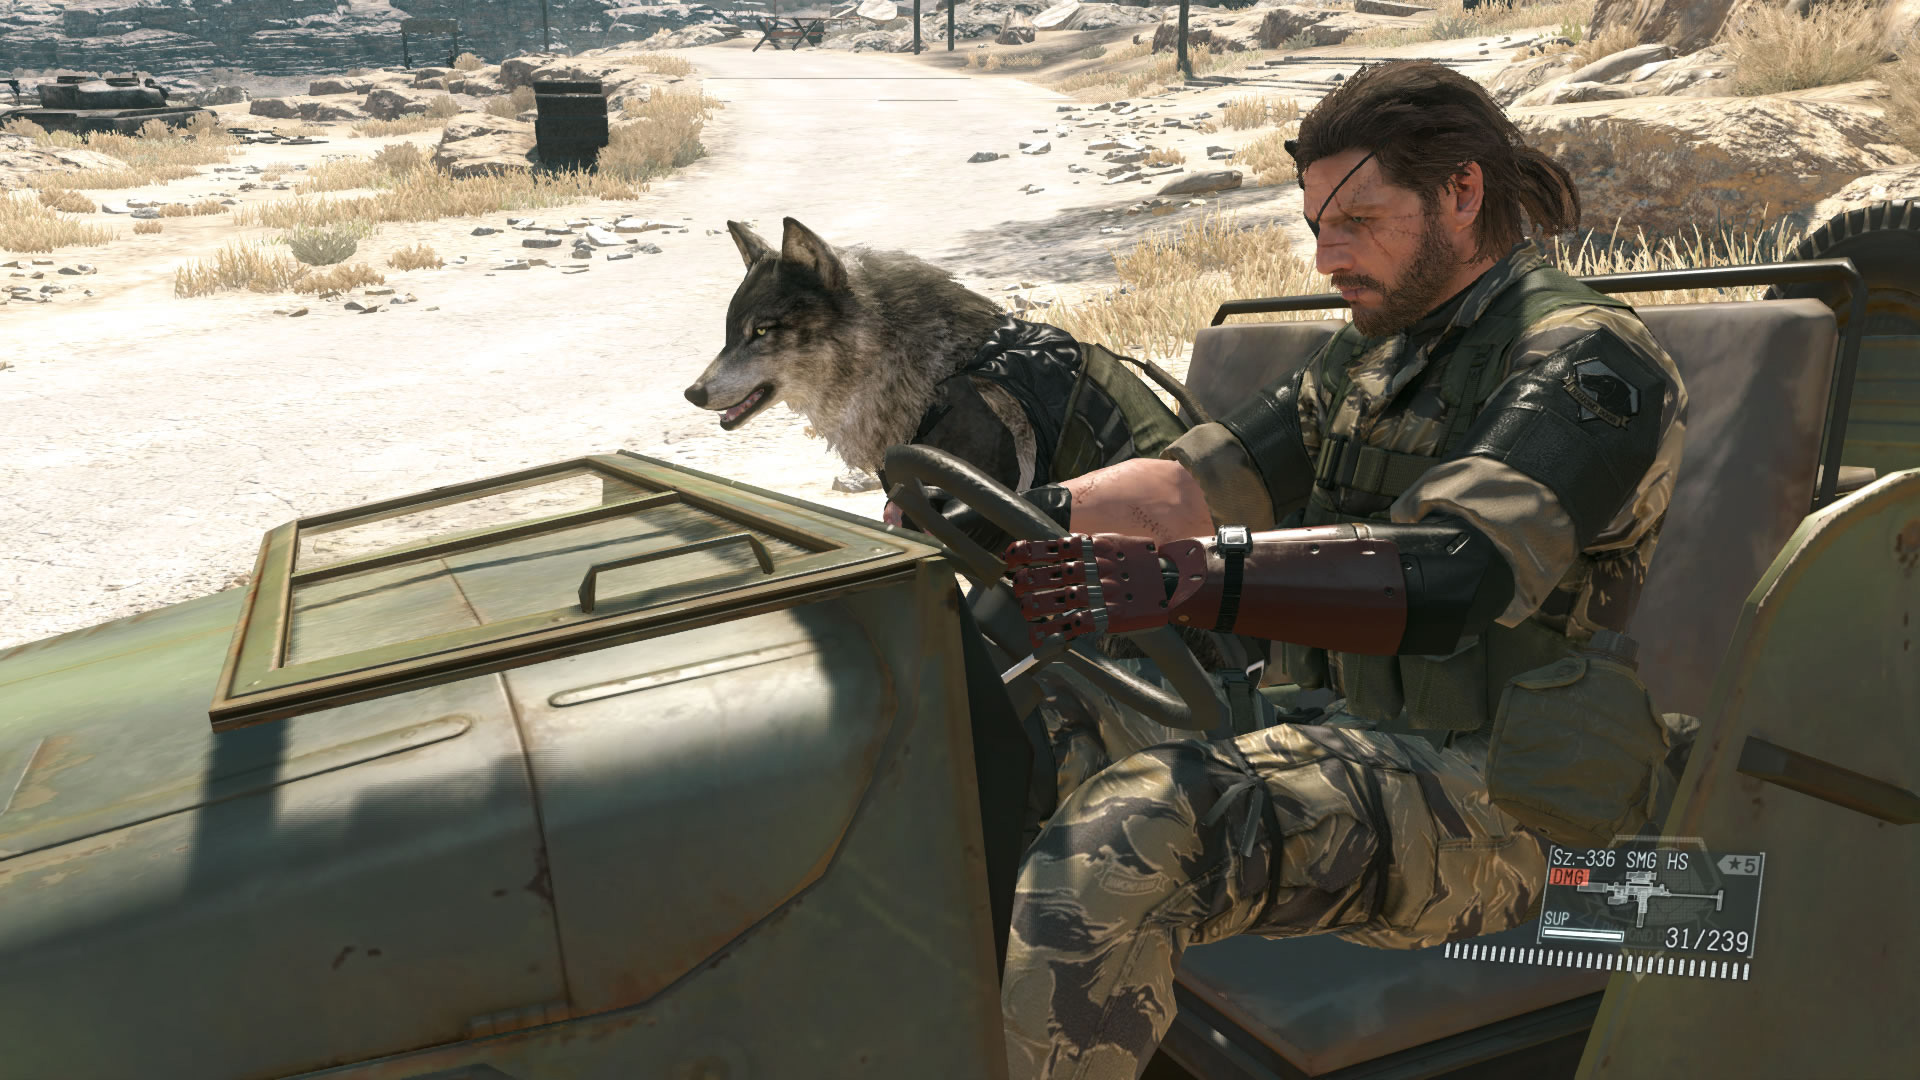 Metal-Gear-Solid-V-The-Phantom-Pain-E3-2015-Screen-Big-Boss-and-DD-in-Jeep-2